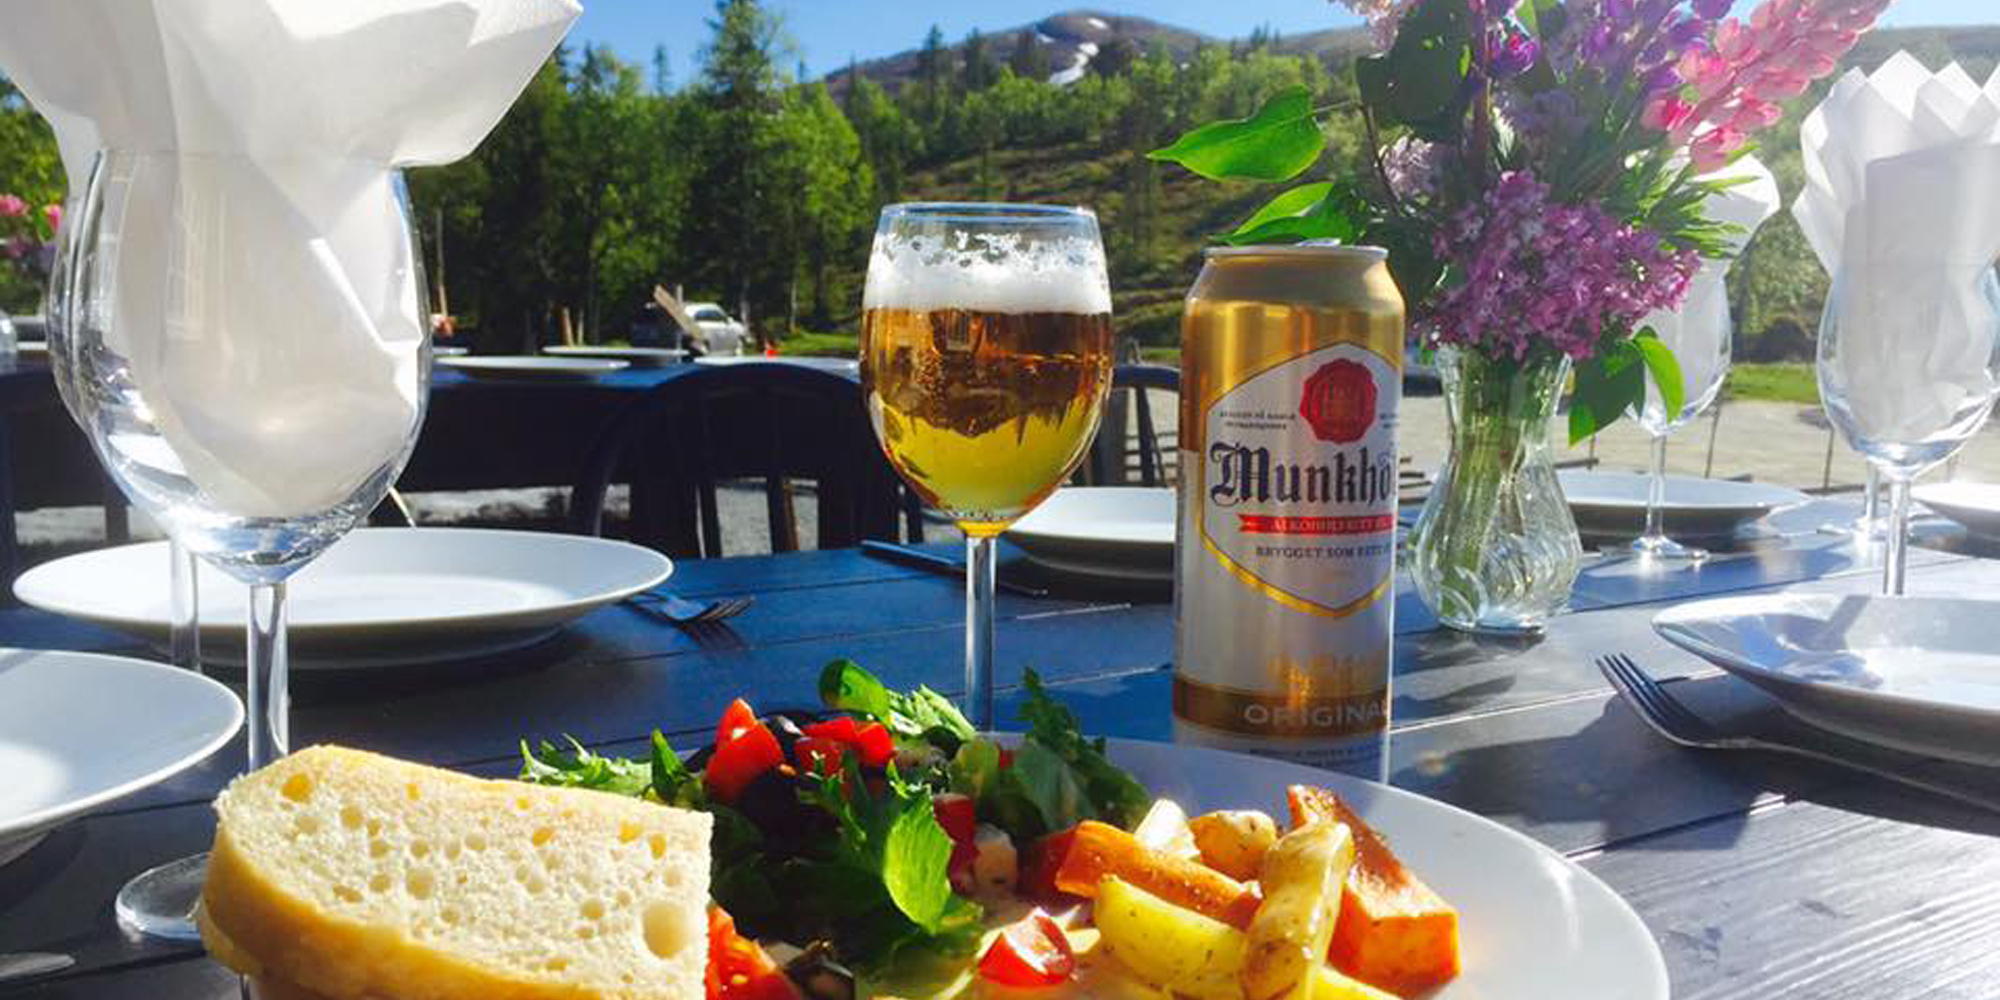 Skallstuggu in Levanger - Enjoy a delicious meal outdoors in the sunshine. Copyright: Skallstuggu